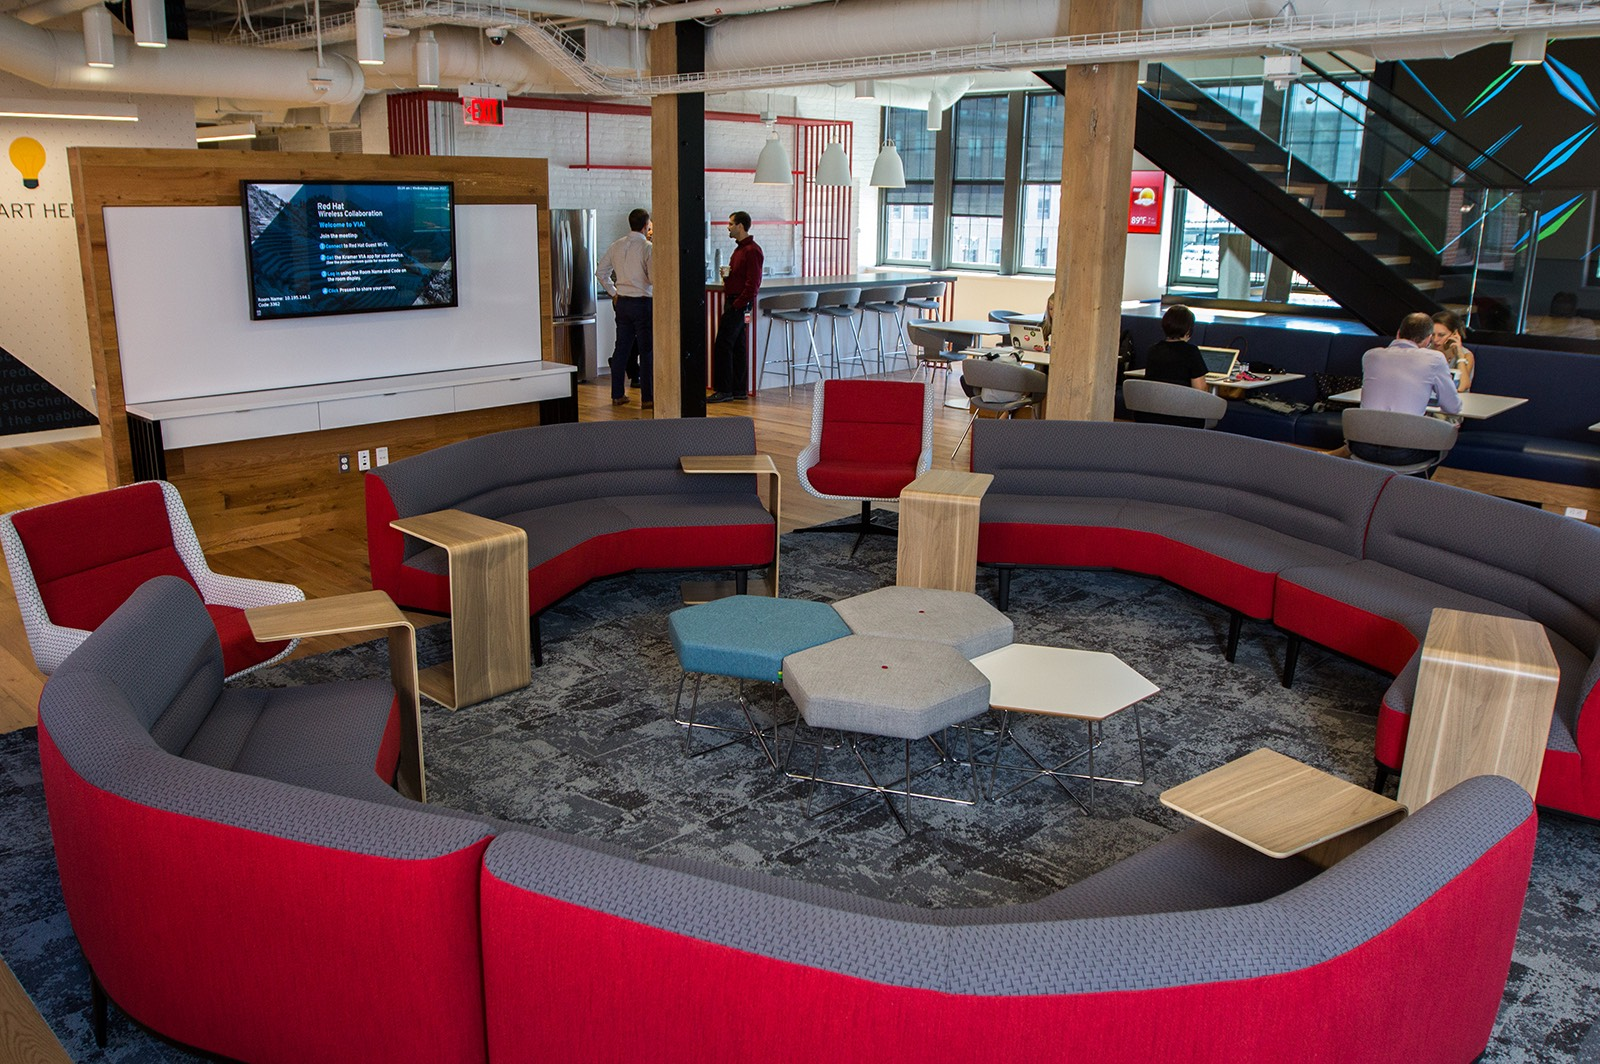 redhat-boston-office-6.jpg